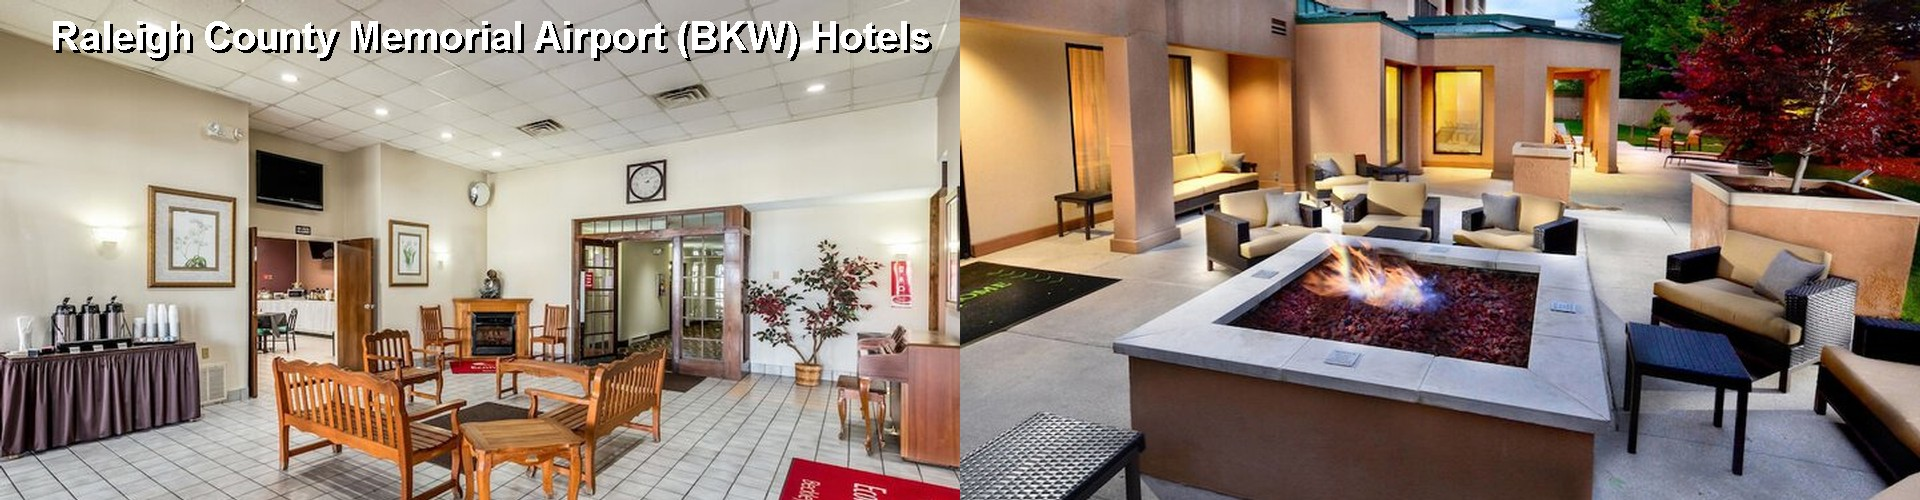 5 Best Hotels near Raleigh County Memorial Airport (BKW)